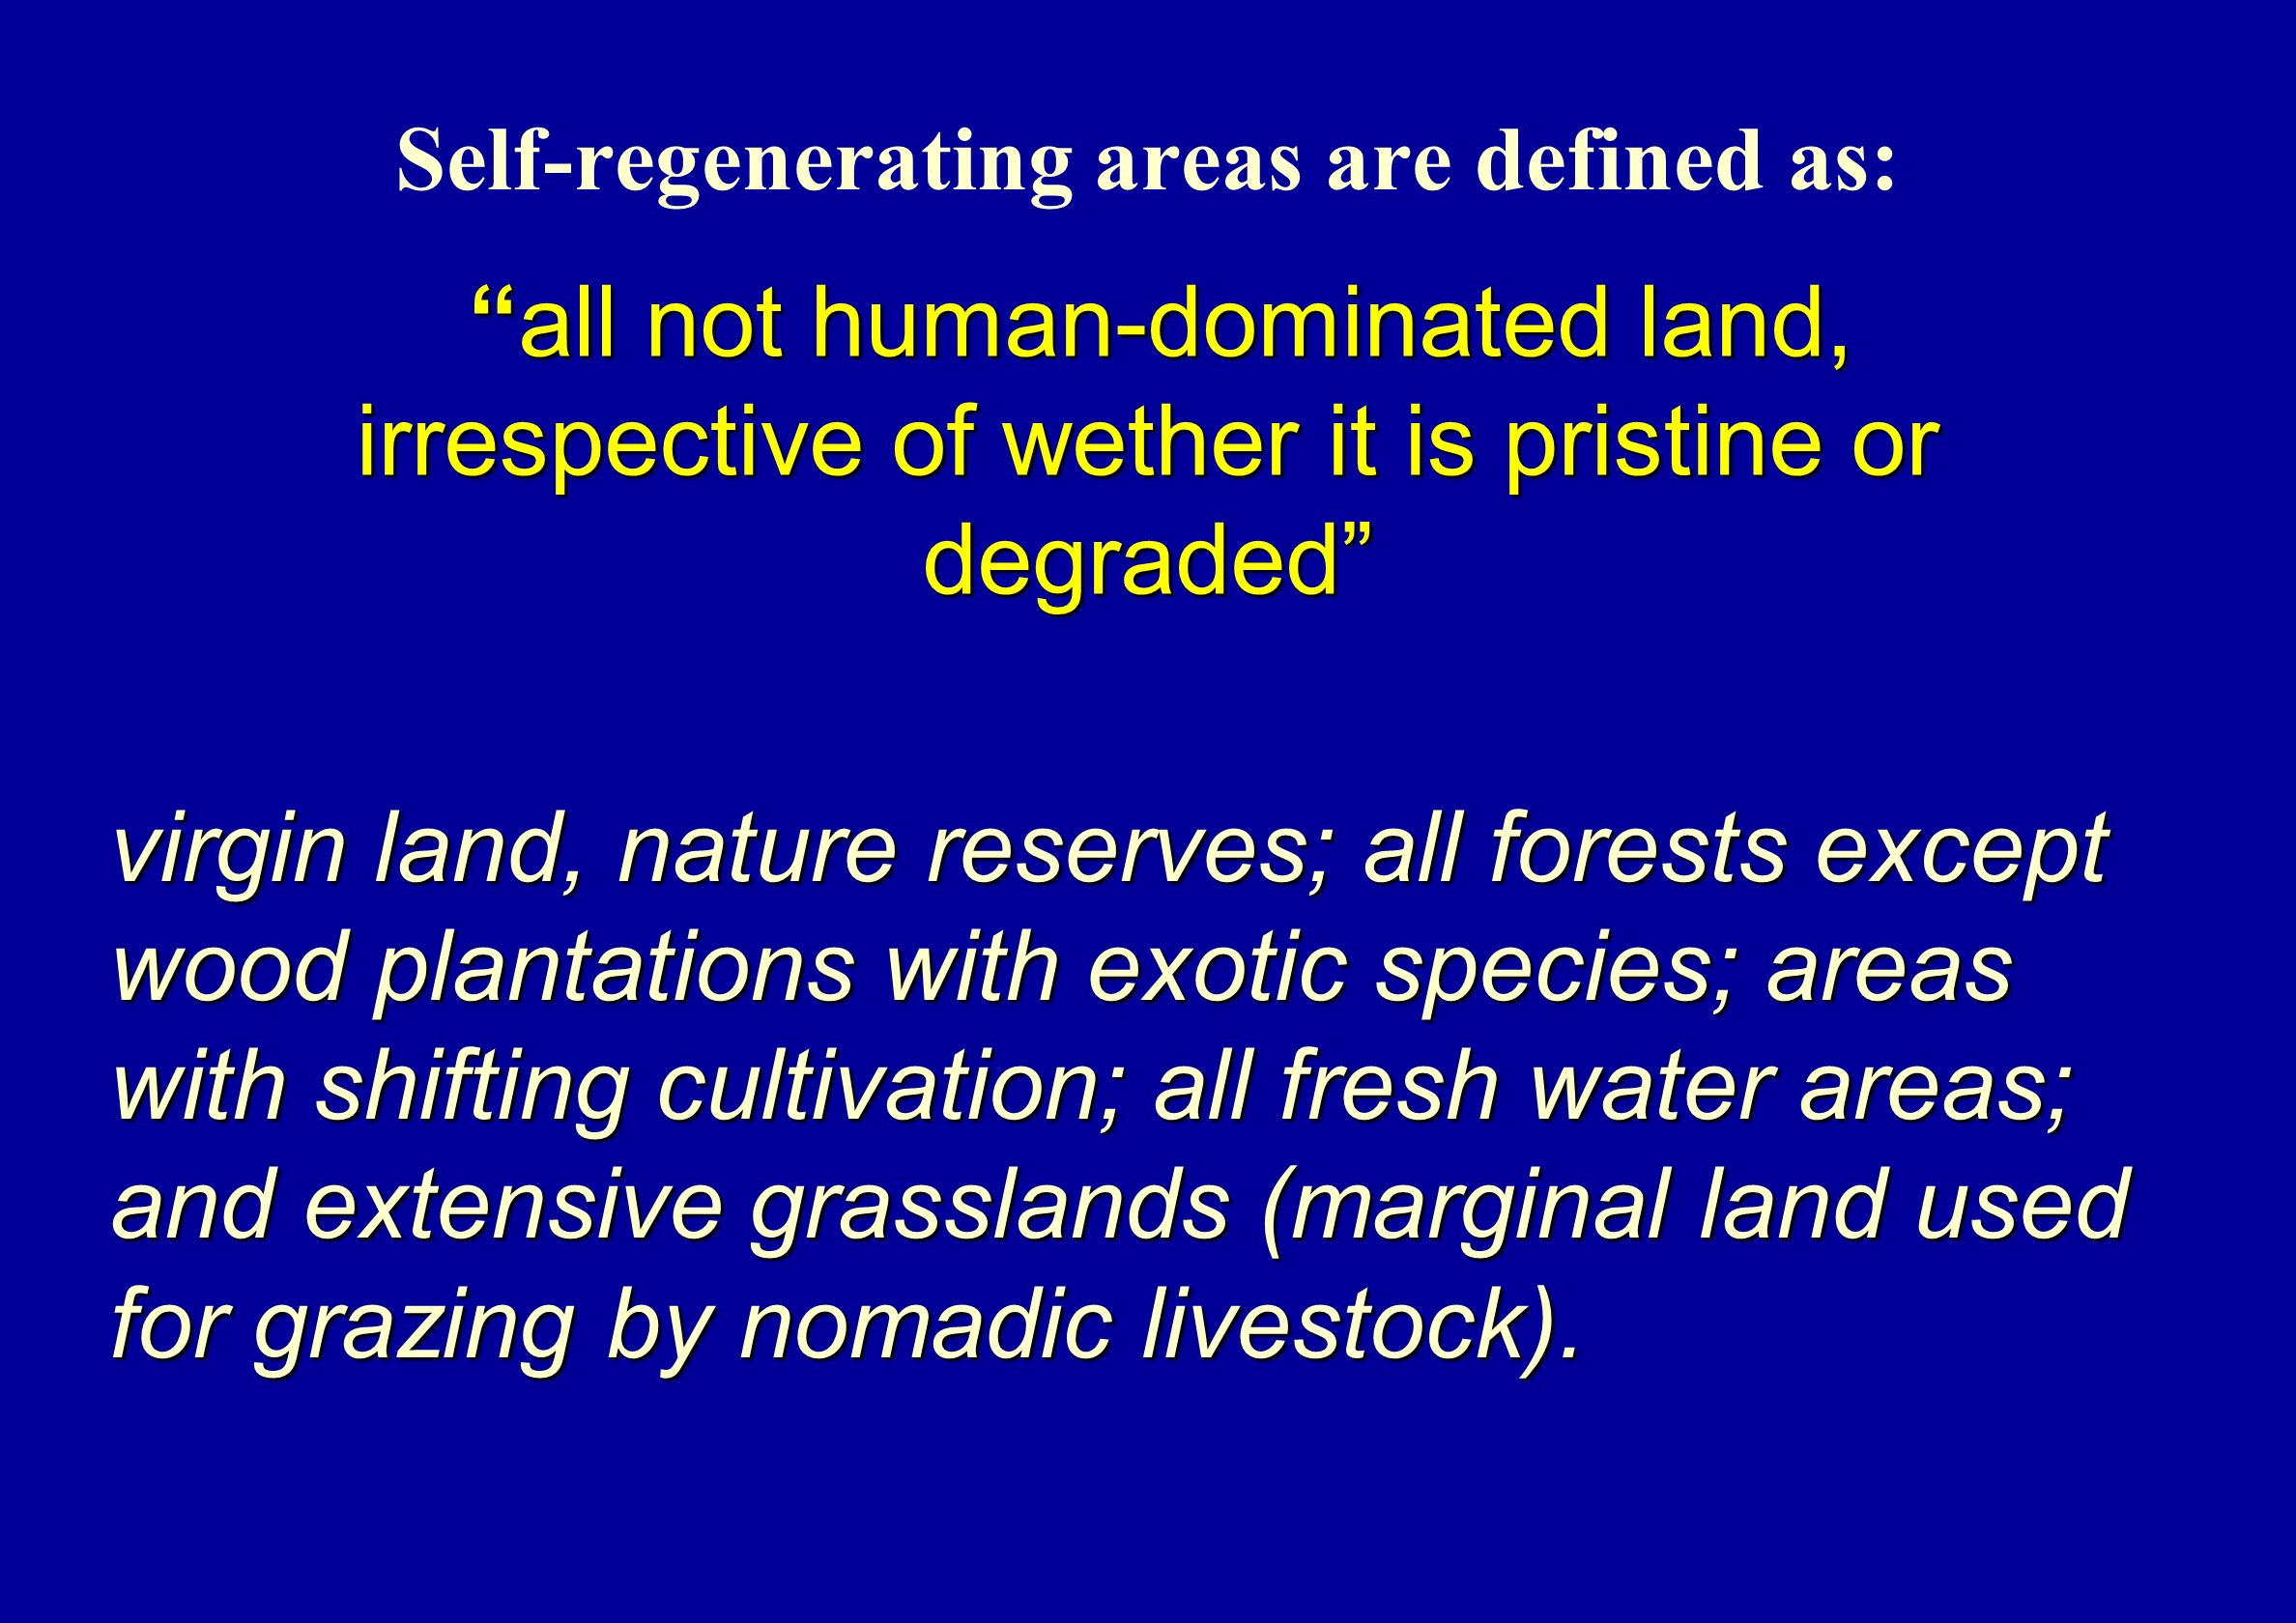 Self-regenerating areas are defined as: